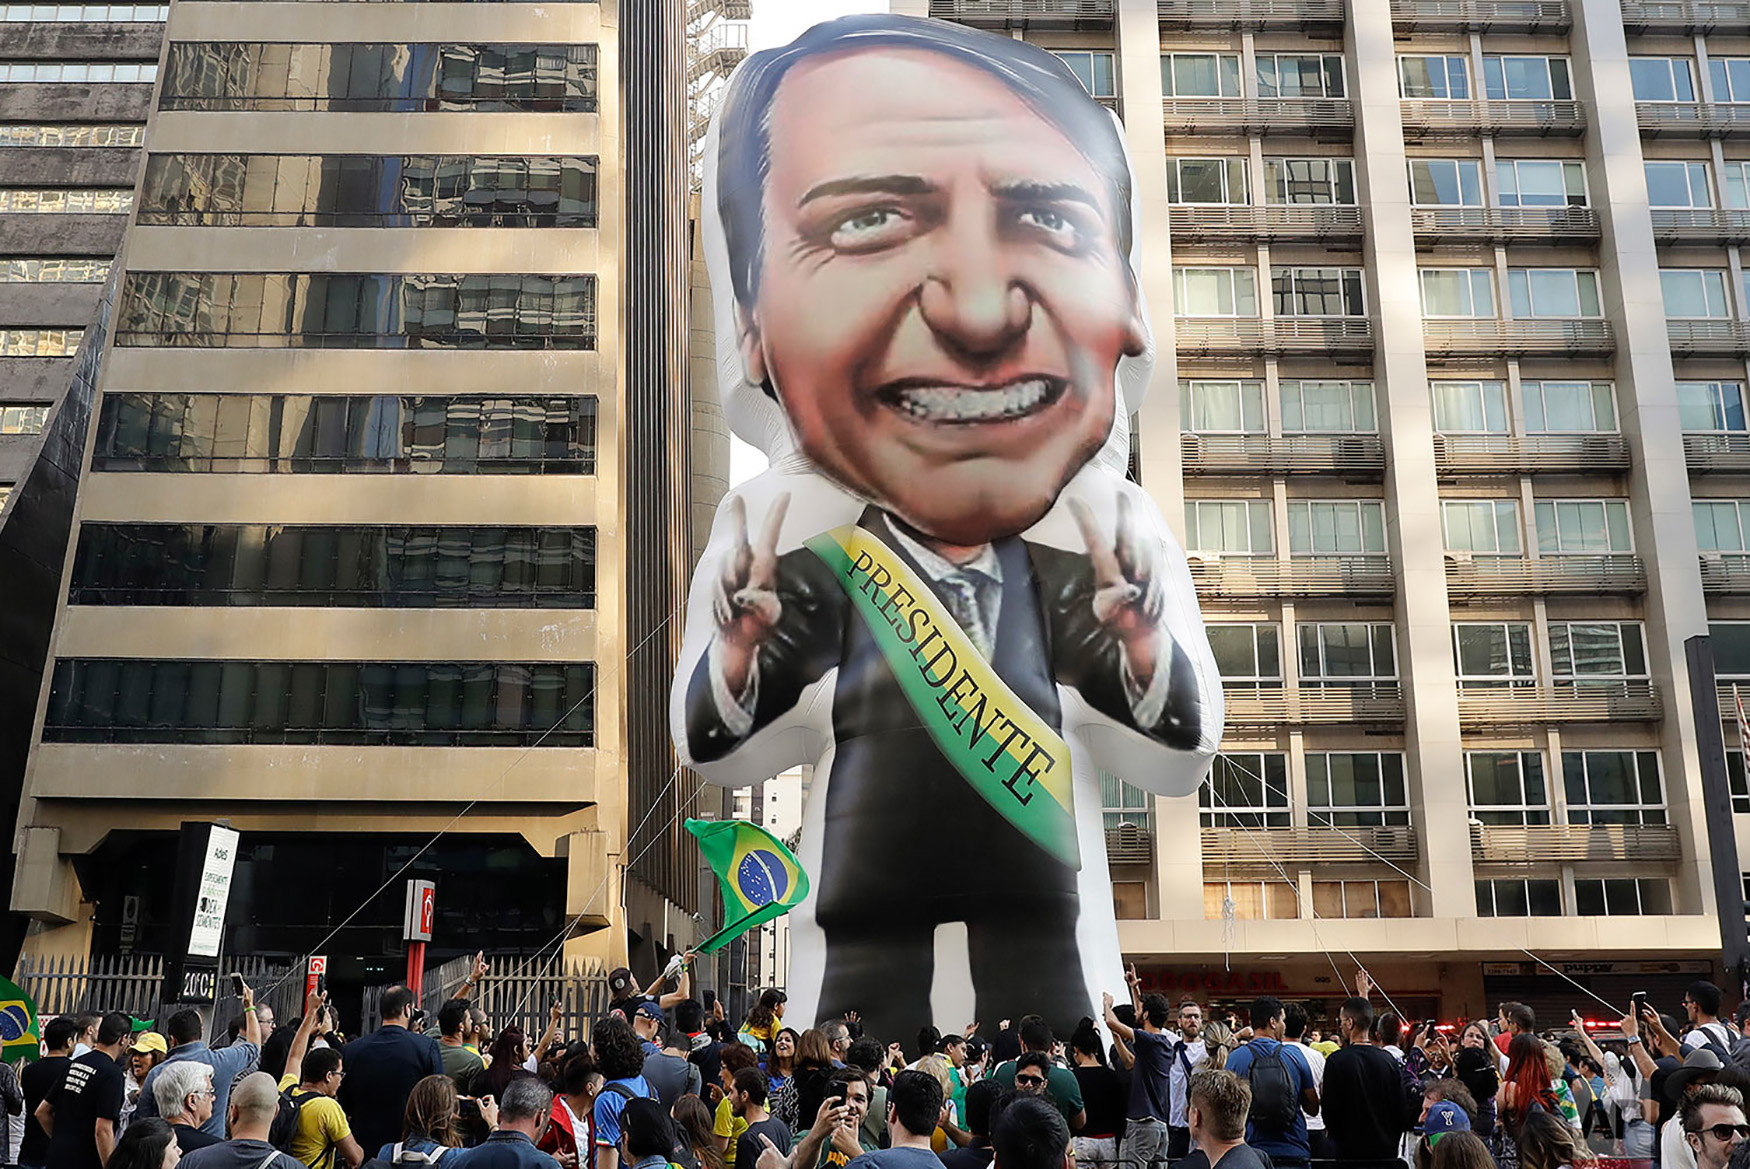 Supporters of Jair Bolsonaro, presidential candidate for the National Social Liberal Party who was stabbed during a campaign event days ago, exhibit a large, inflatable doll in his image as they march along Paulista Avenue to show support for him in Sao Paulo, Brazil, Sept. 9, 2018. (AP Photo/Andre Penner)